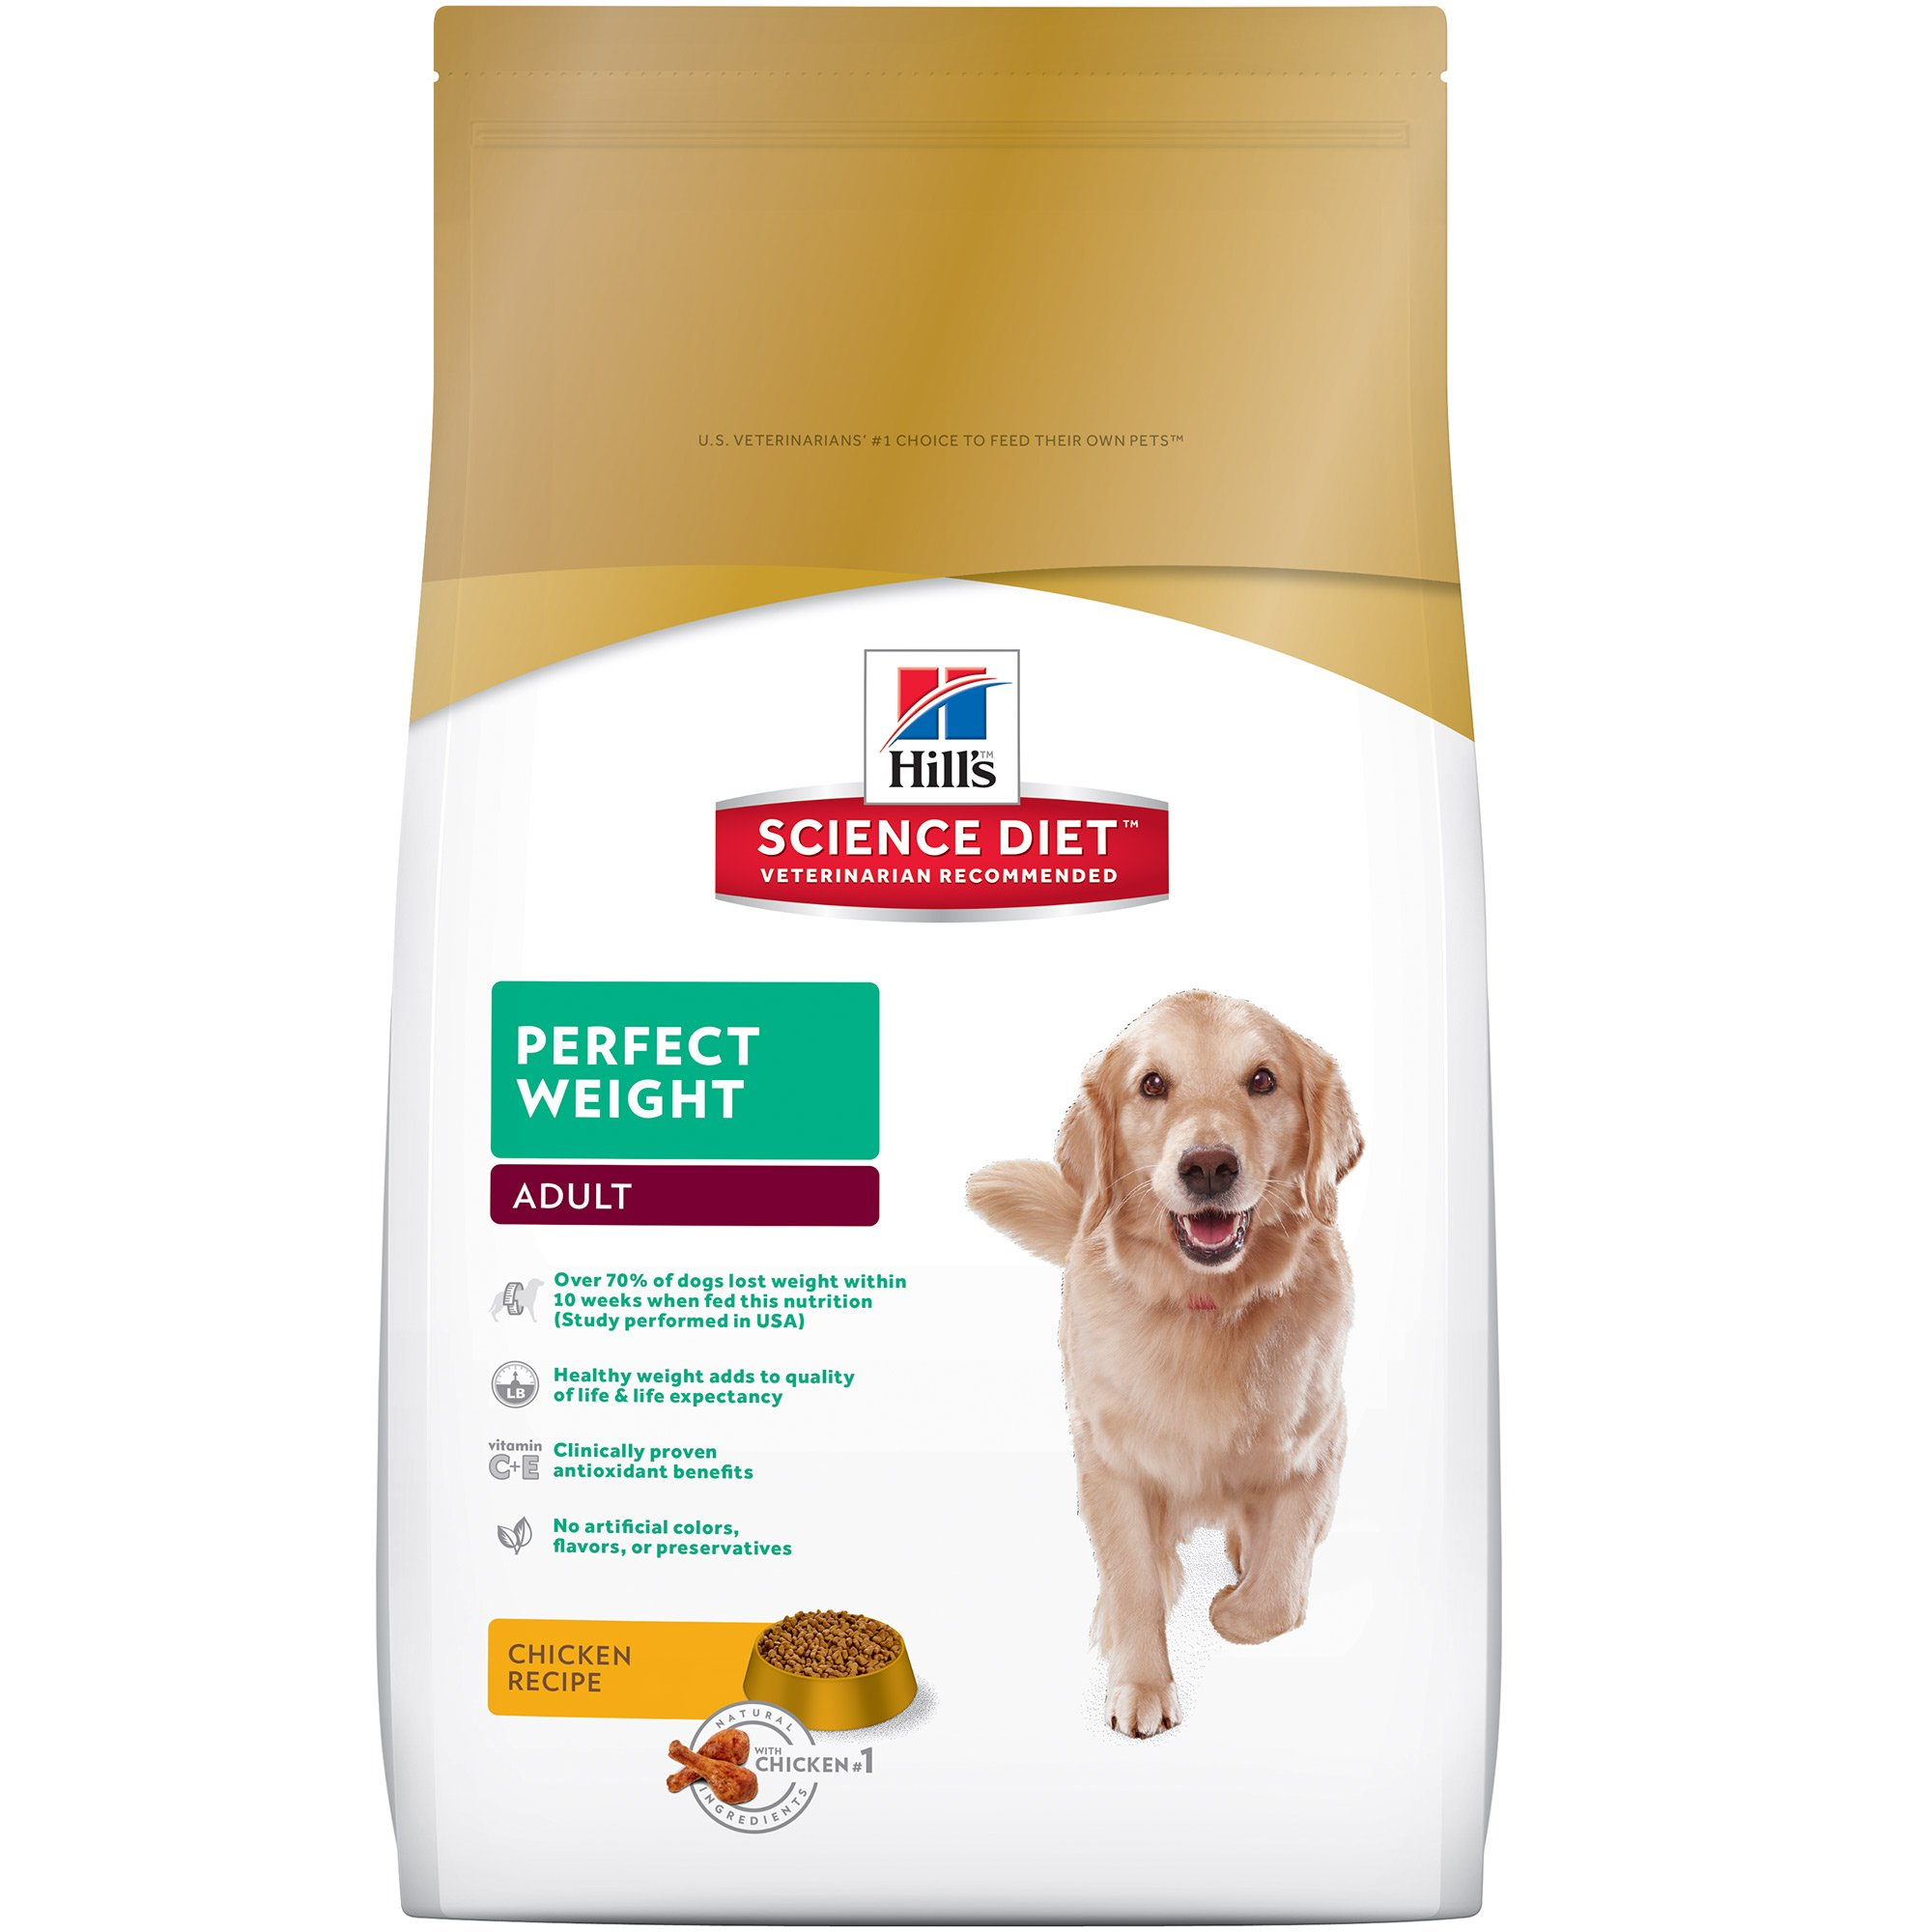 Pet Nutrition: 5 Dog Food Ingredients to Avoid forecast